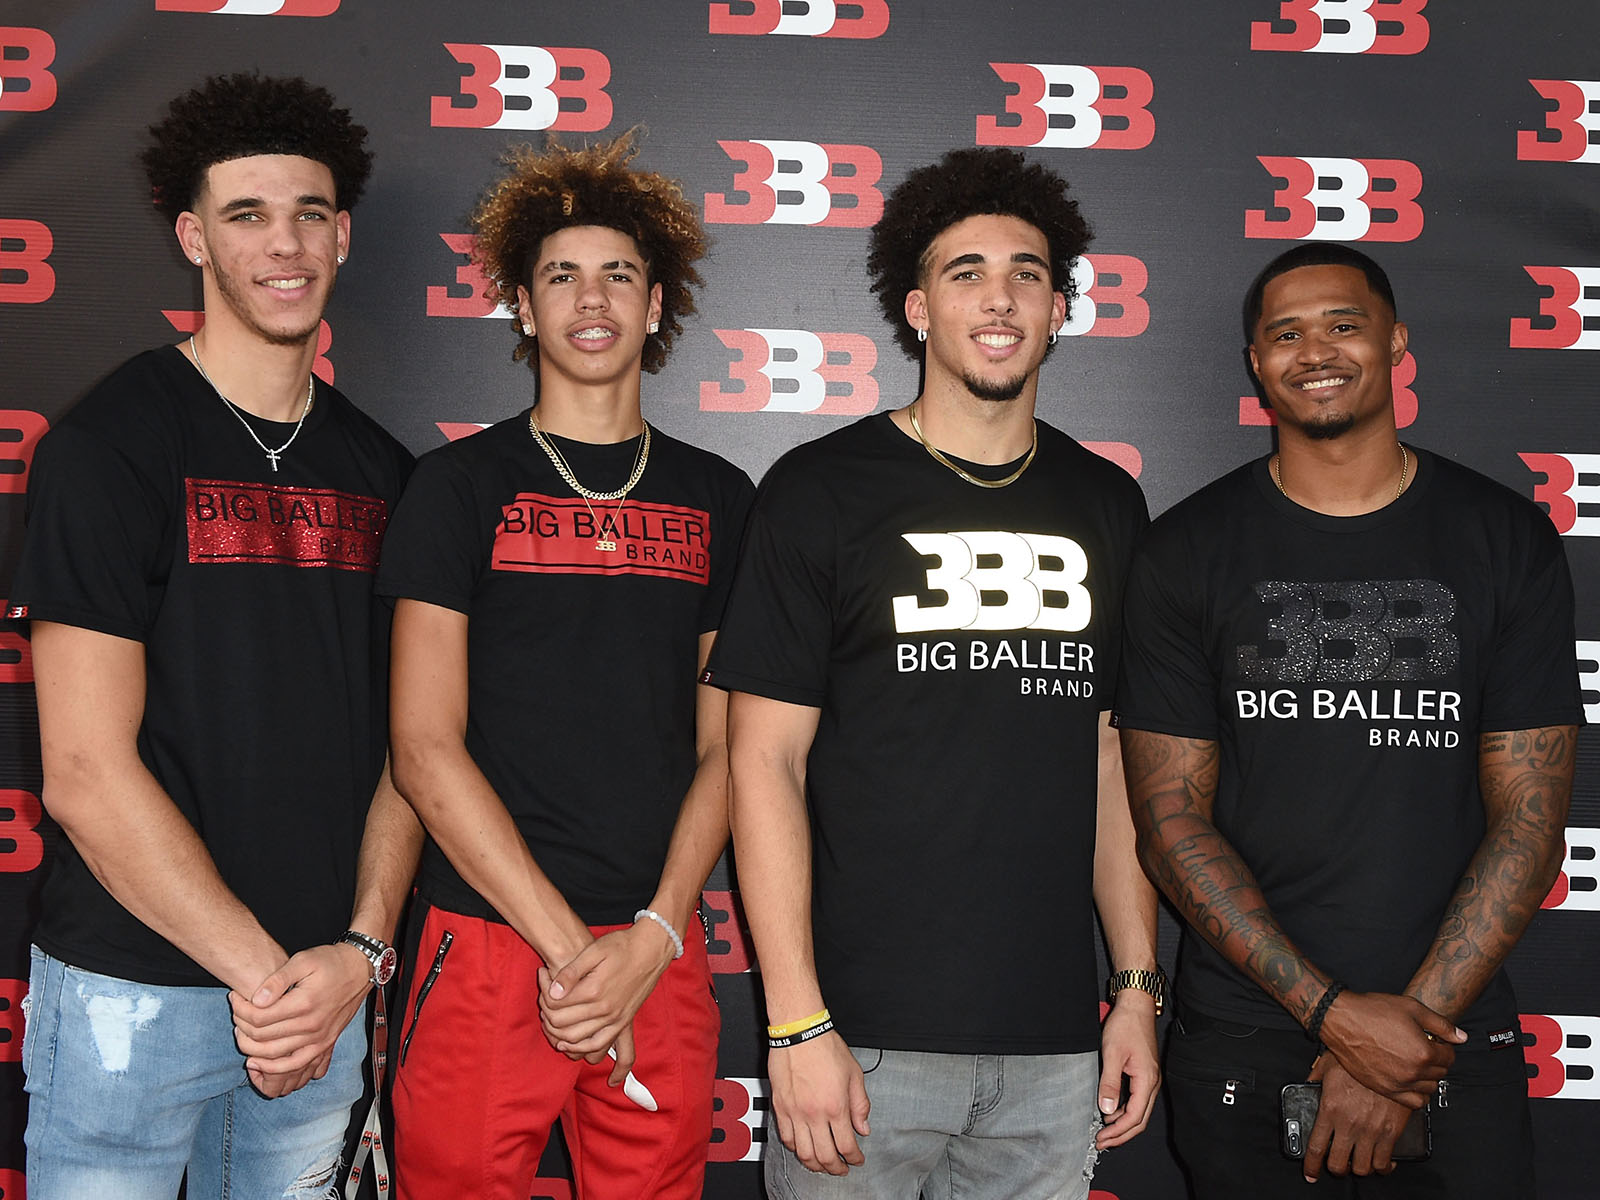 ca496b87d136 LaMelo Ball new sneaker could create NCAA eligibility issues